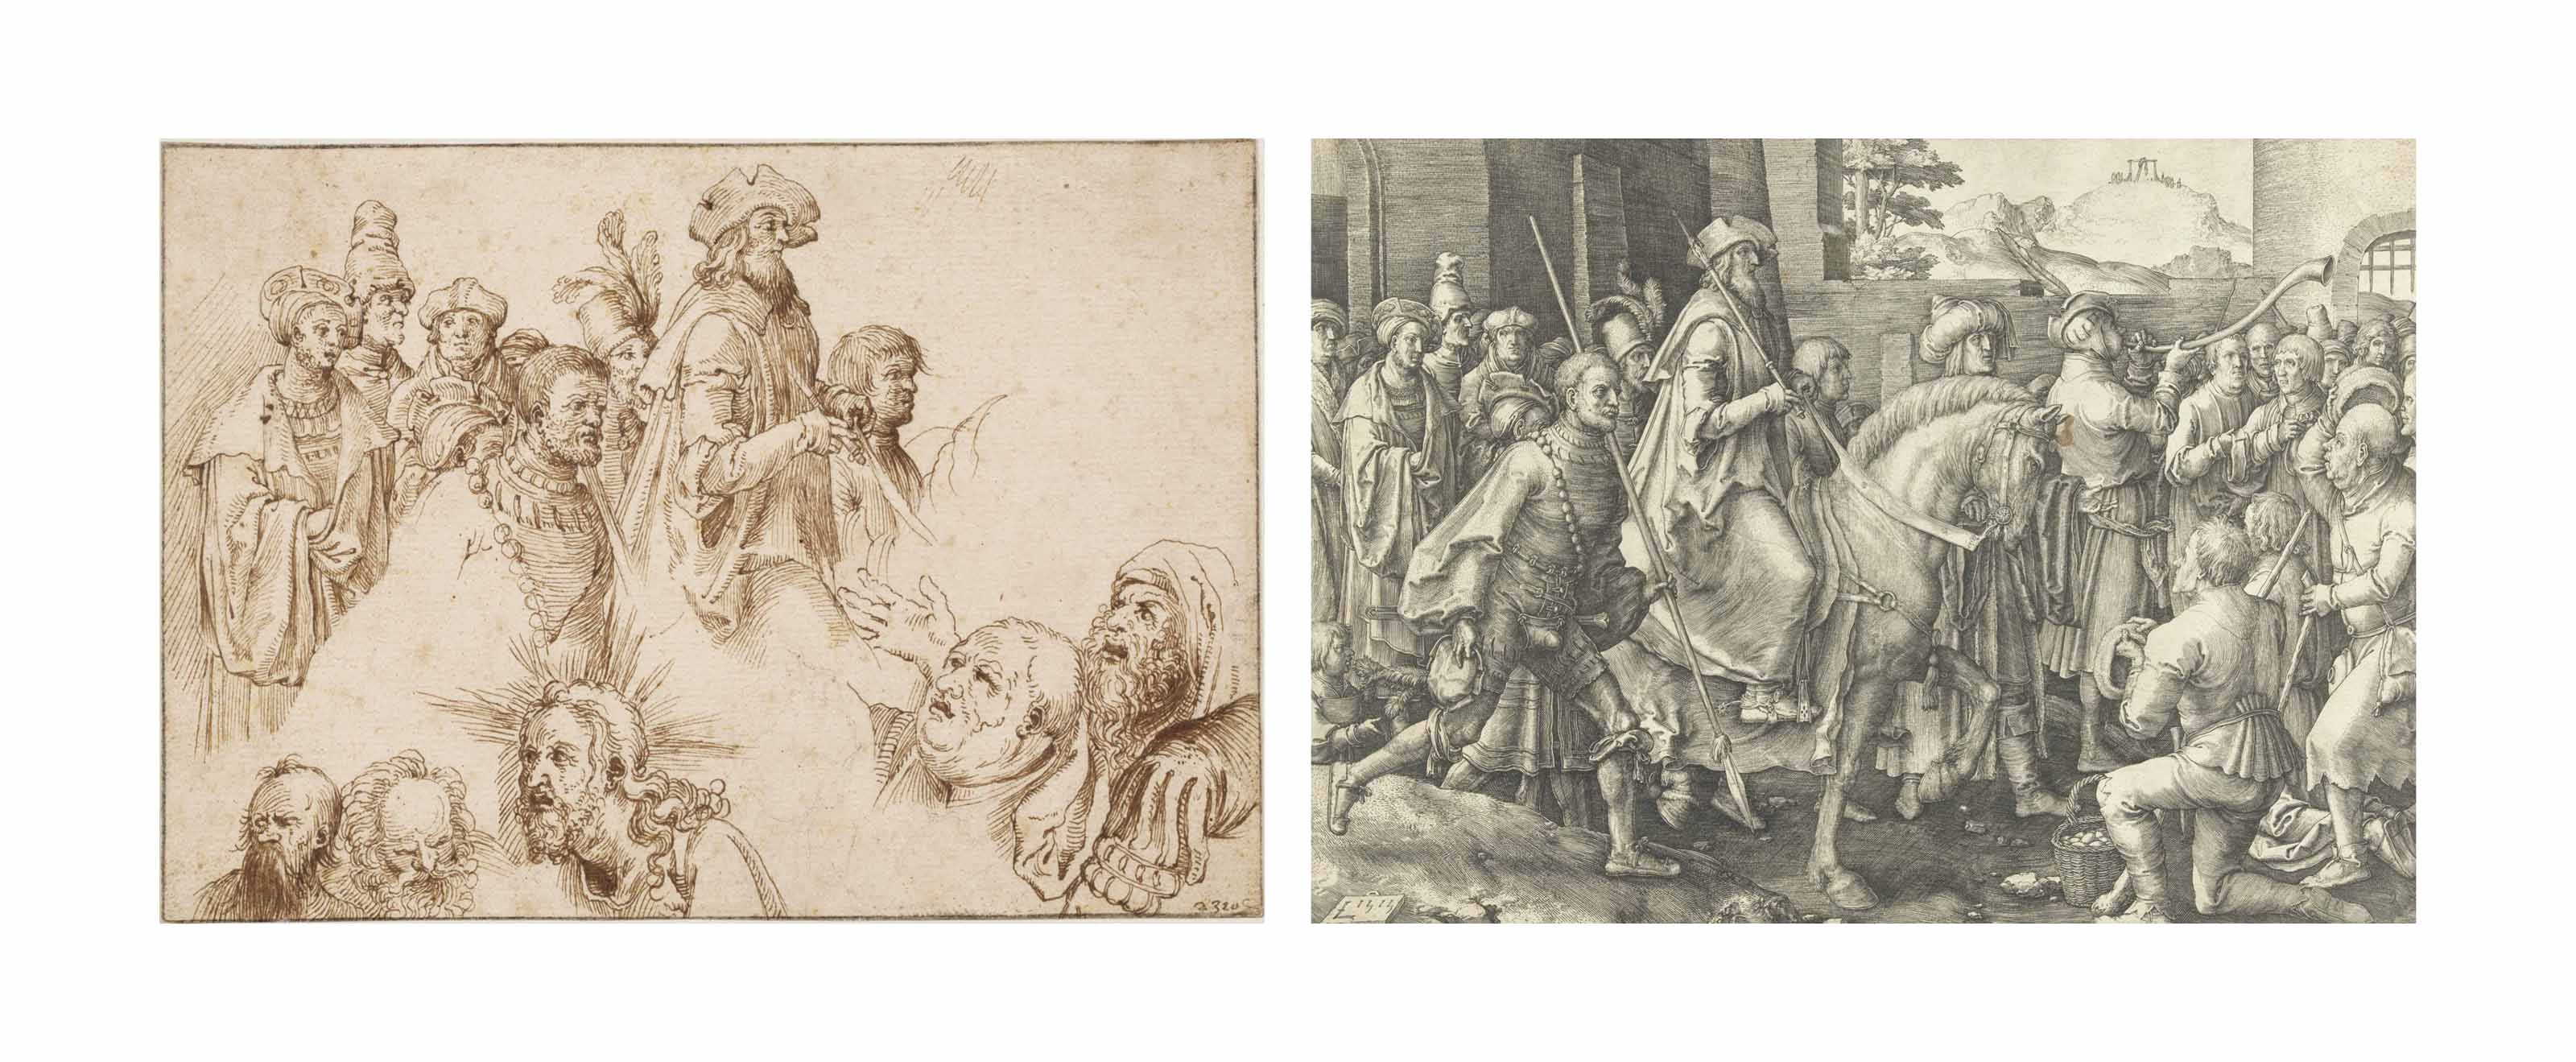 A sheet with studies after engravings by Lucas van Leyden and Albrecht Dürer